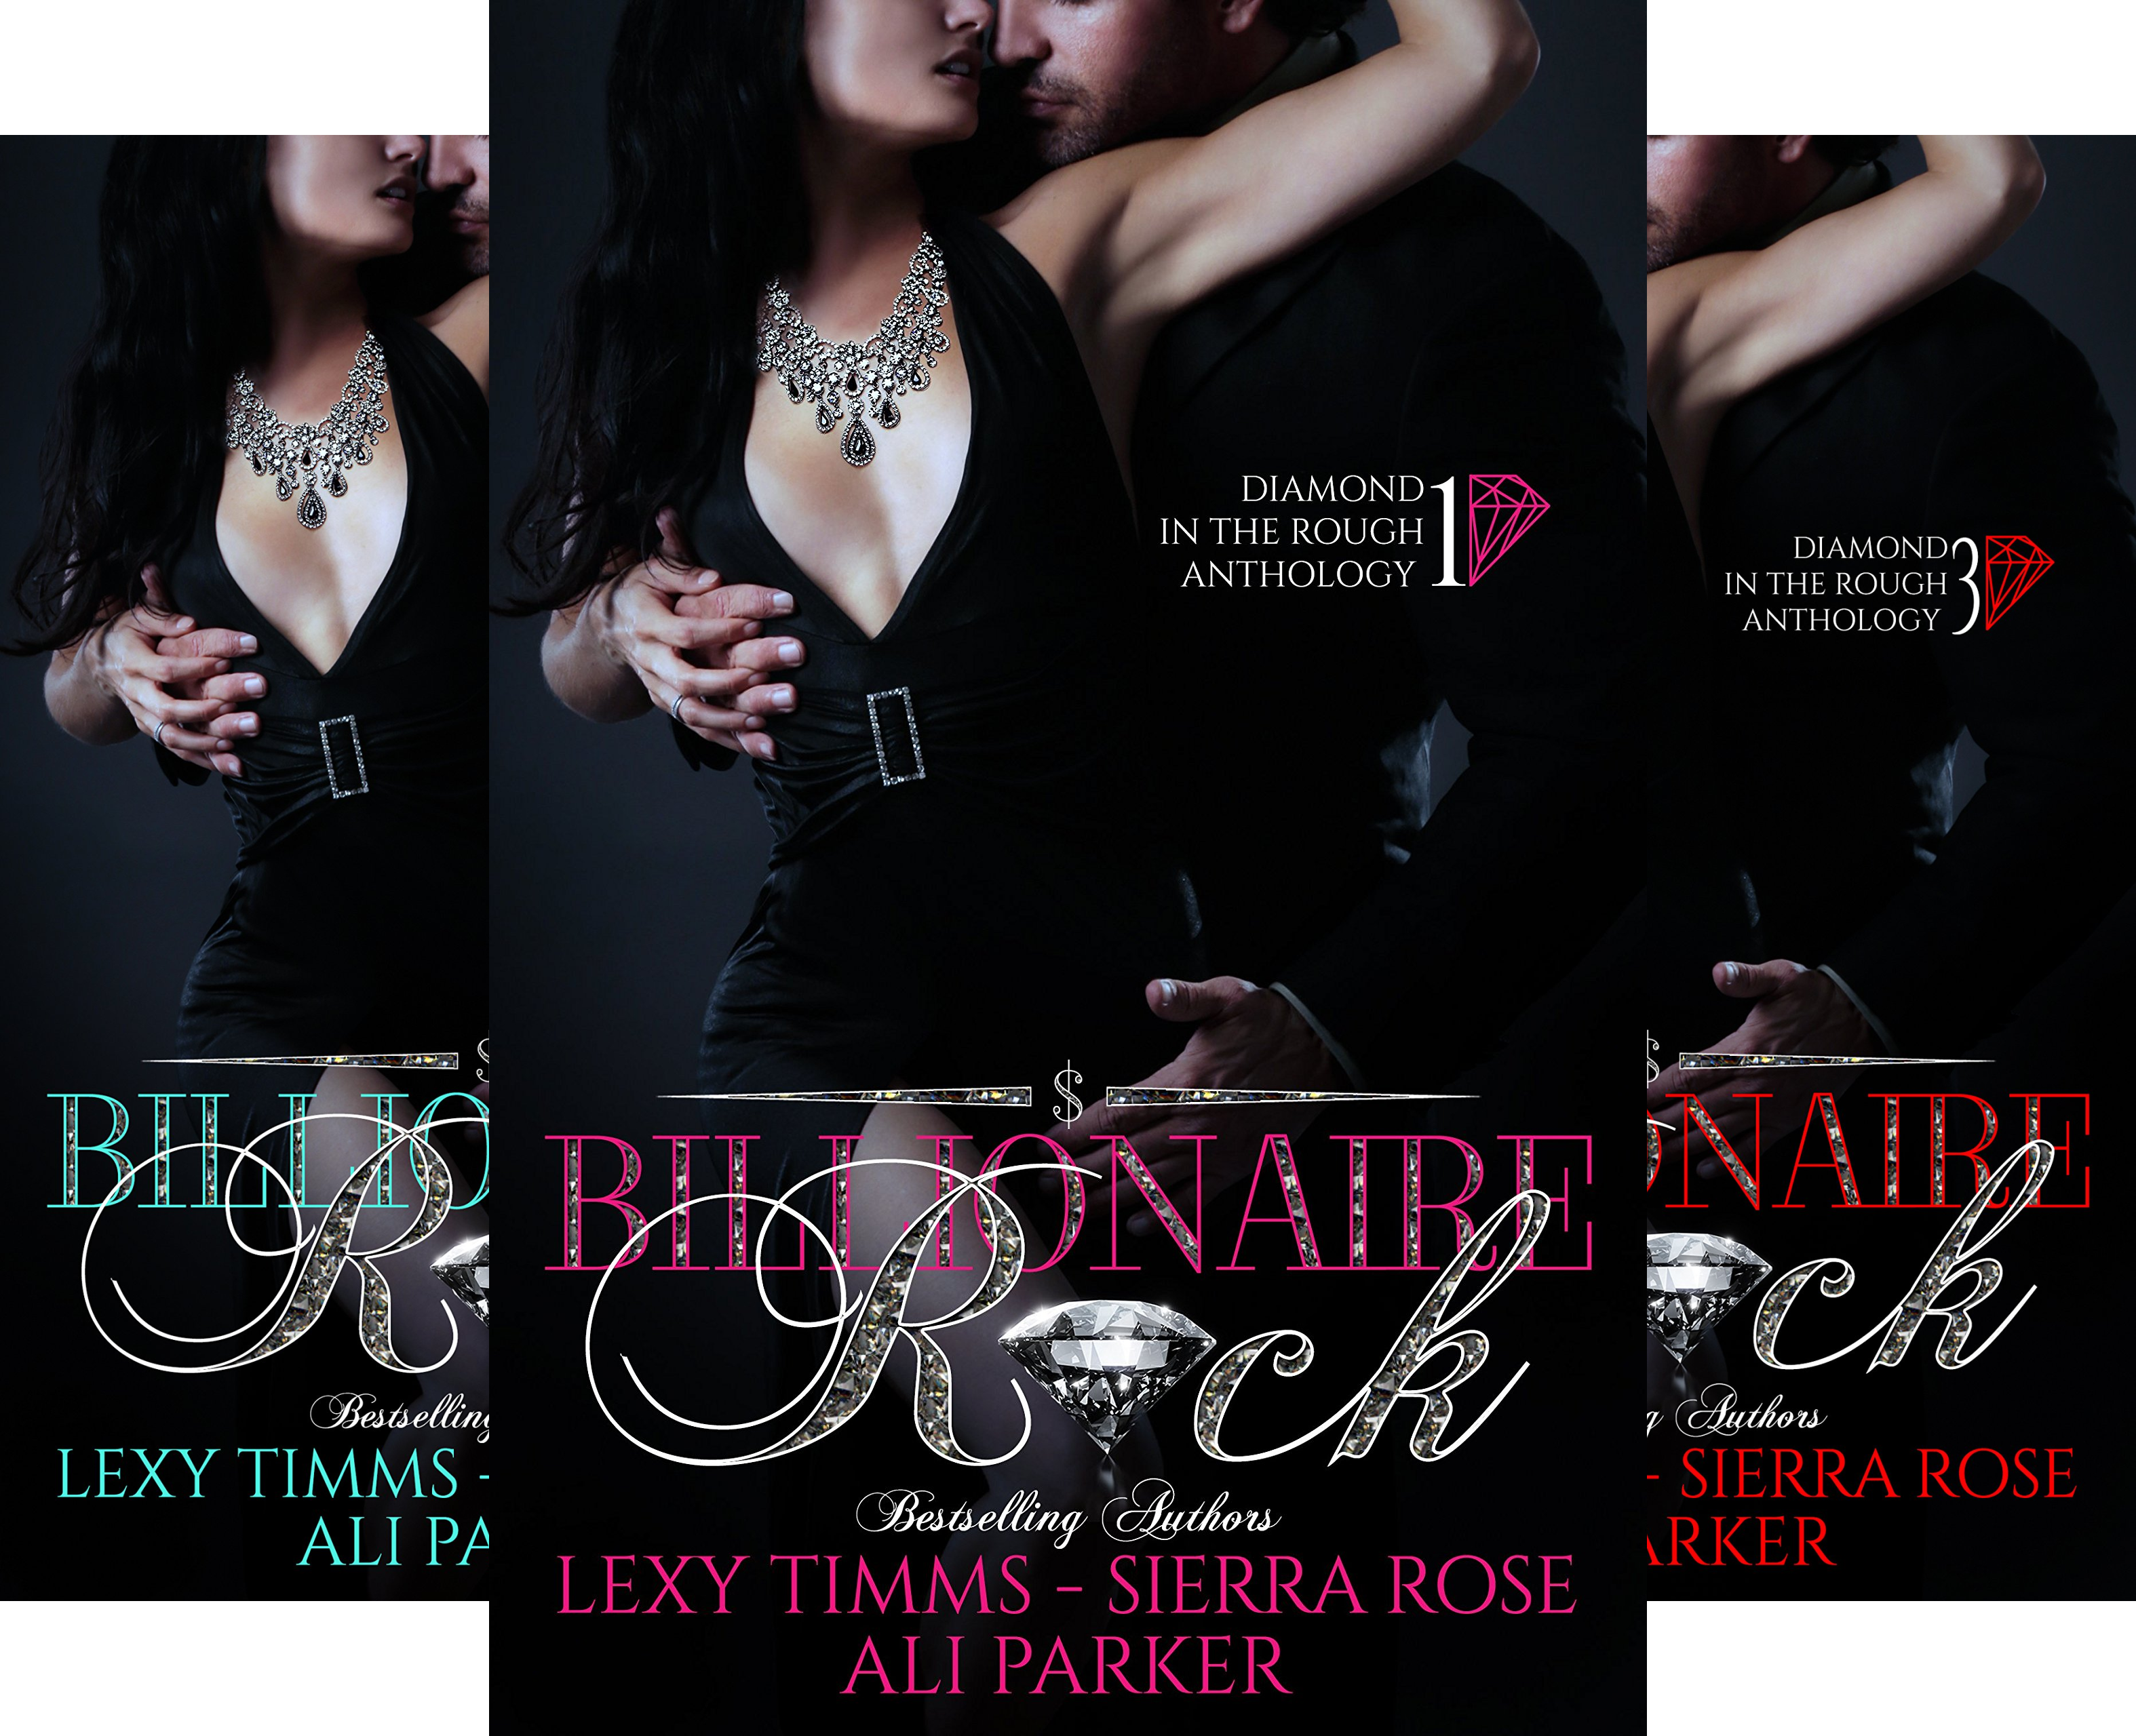 Diamond in the Rough Anthology (3 Book Series)